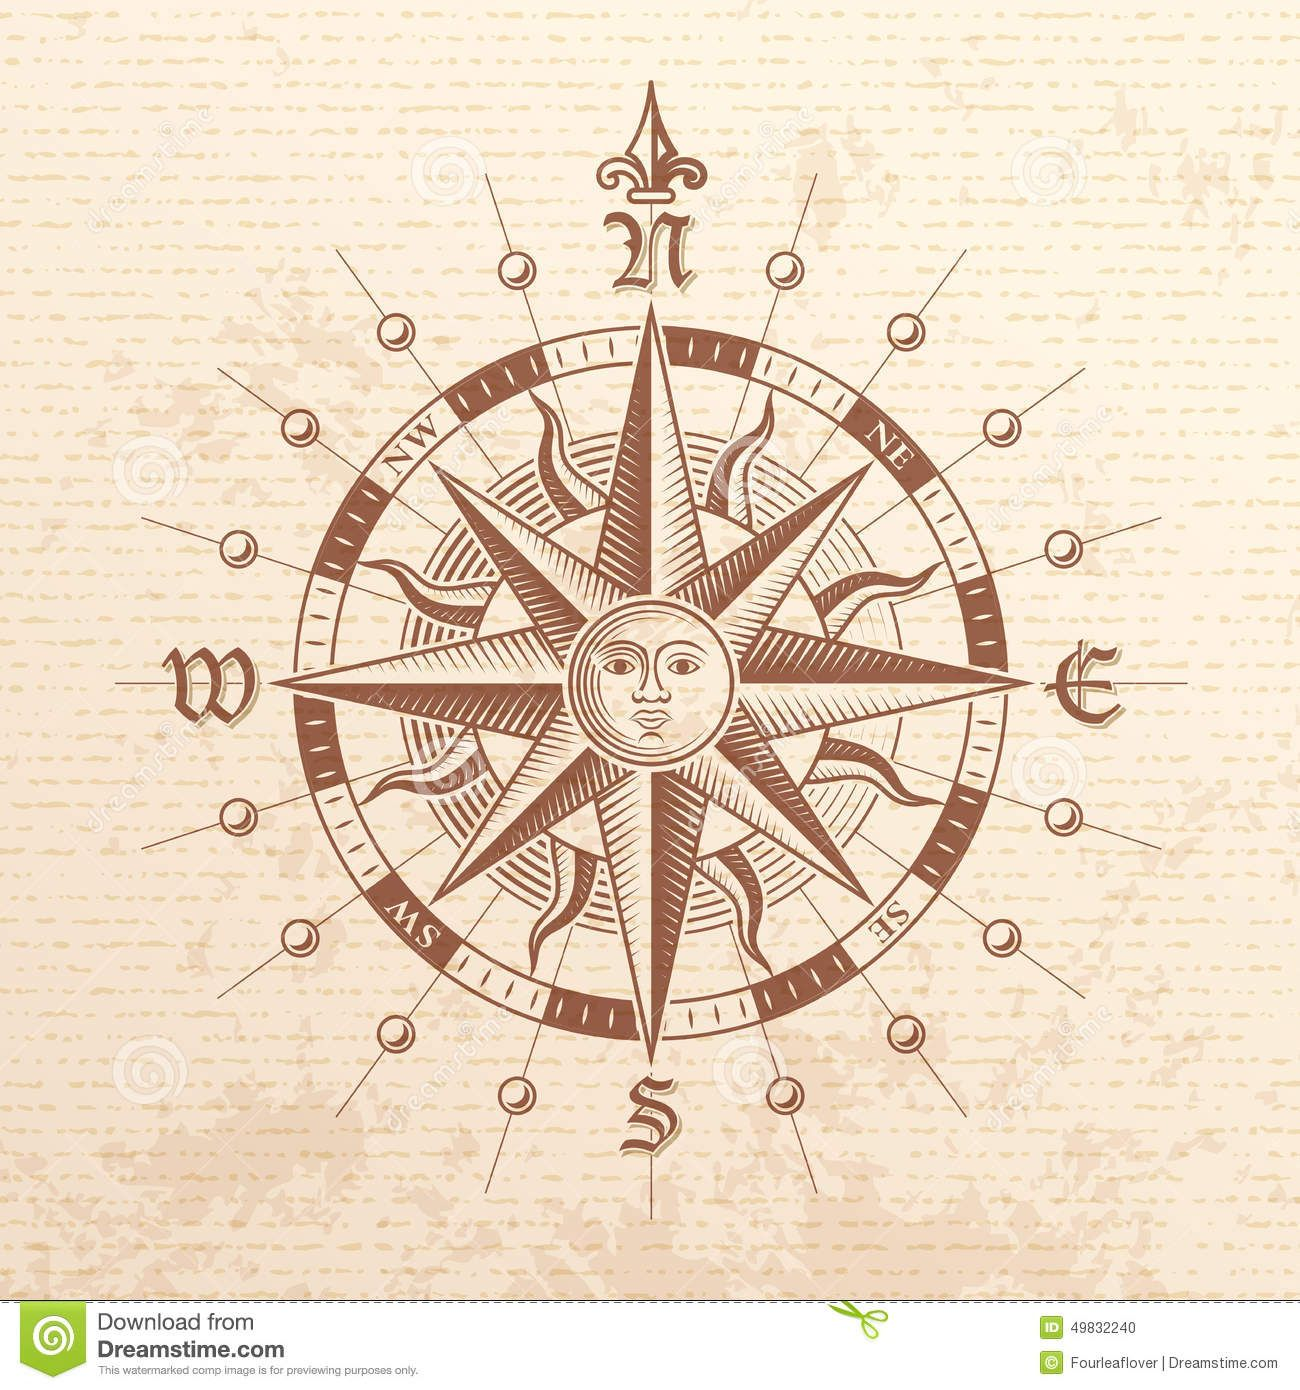 vintage nautical charts compass rose - Google Search | 25th ...